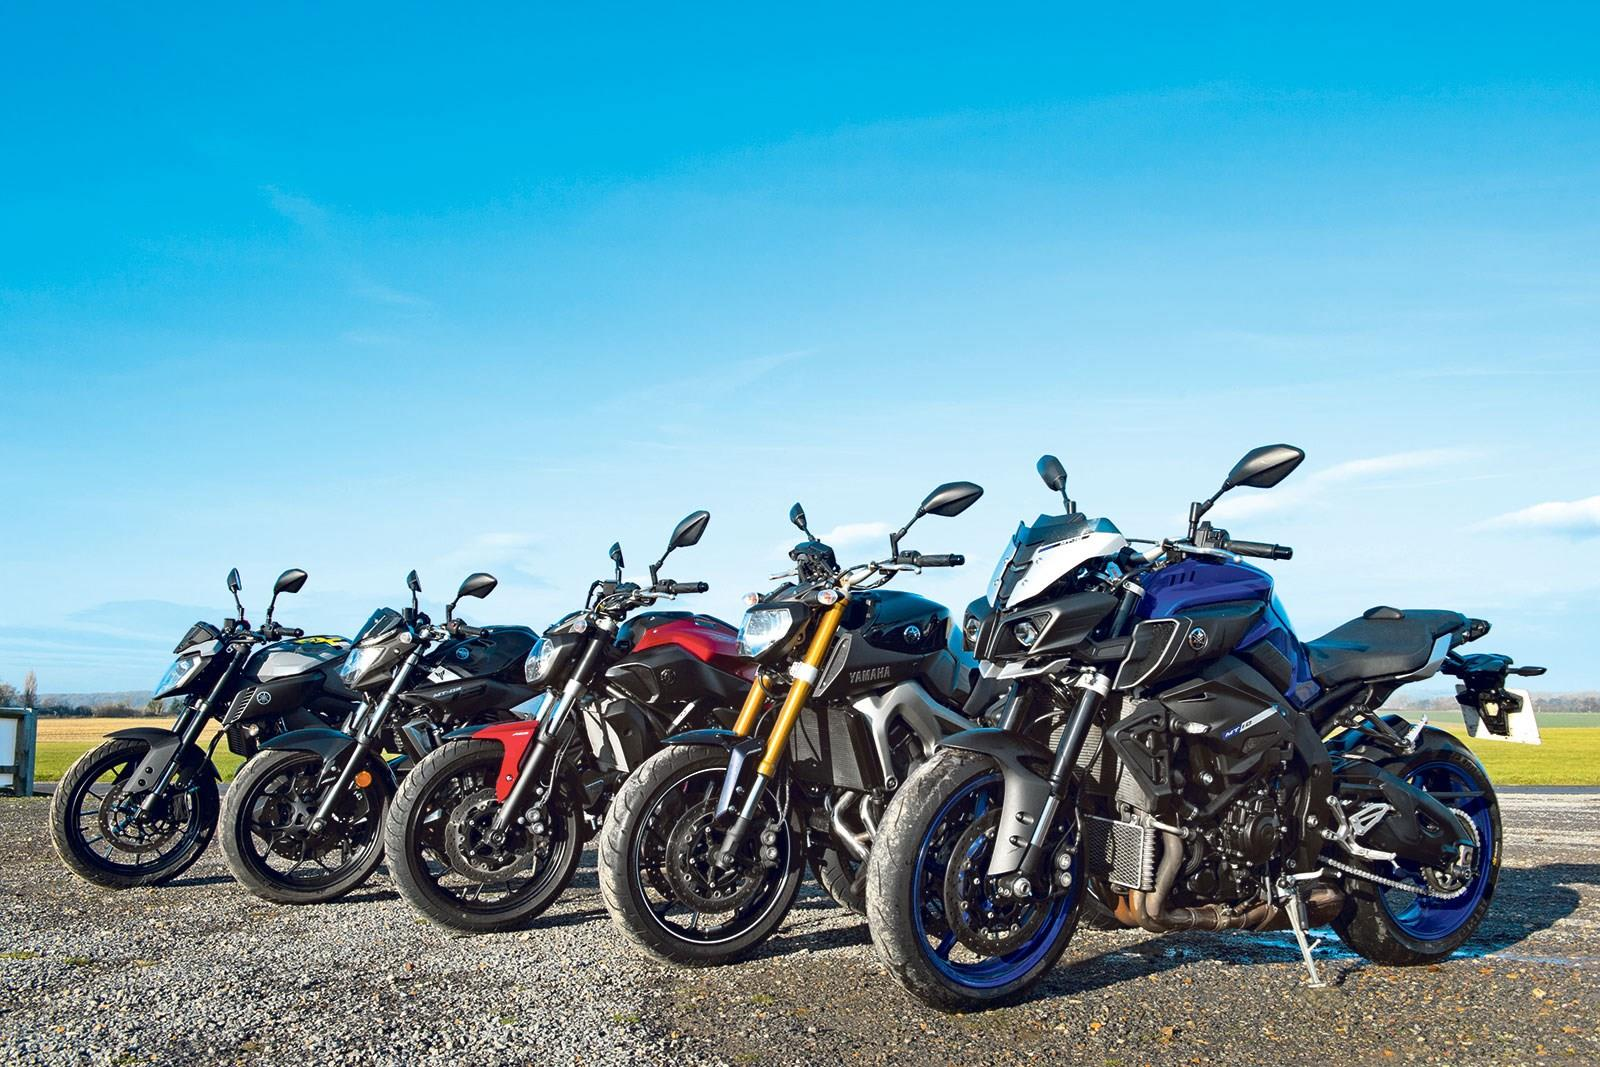 The Yamaha MT range